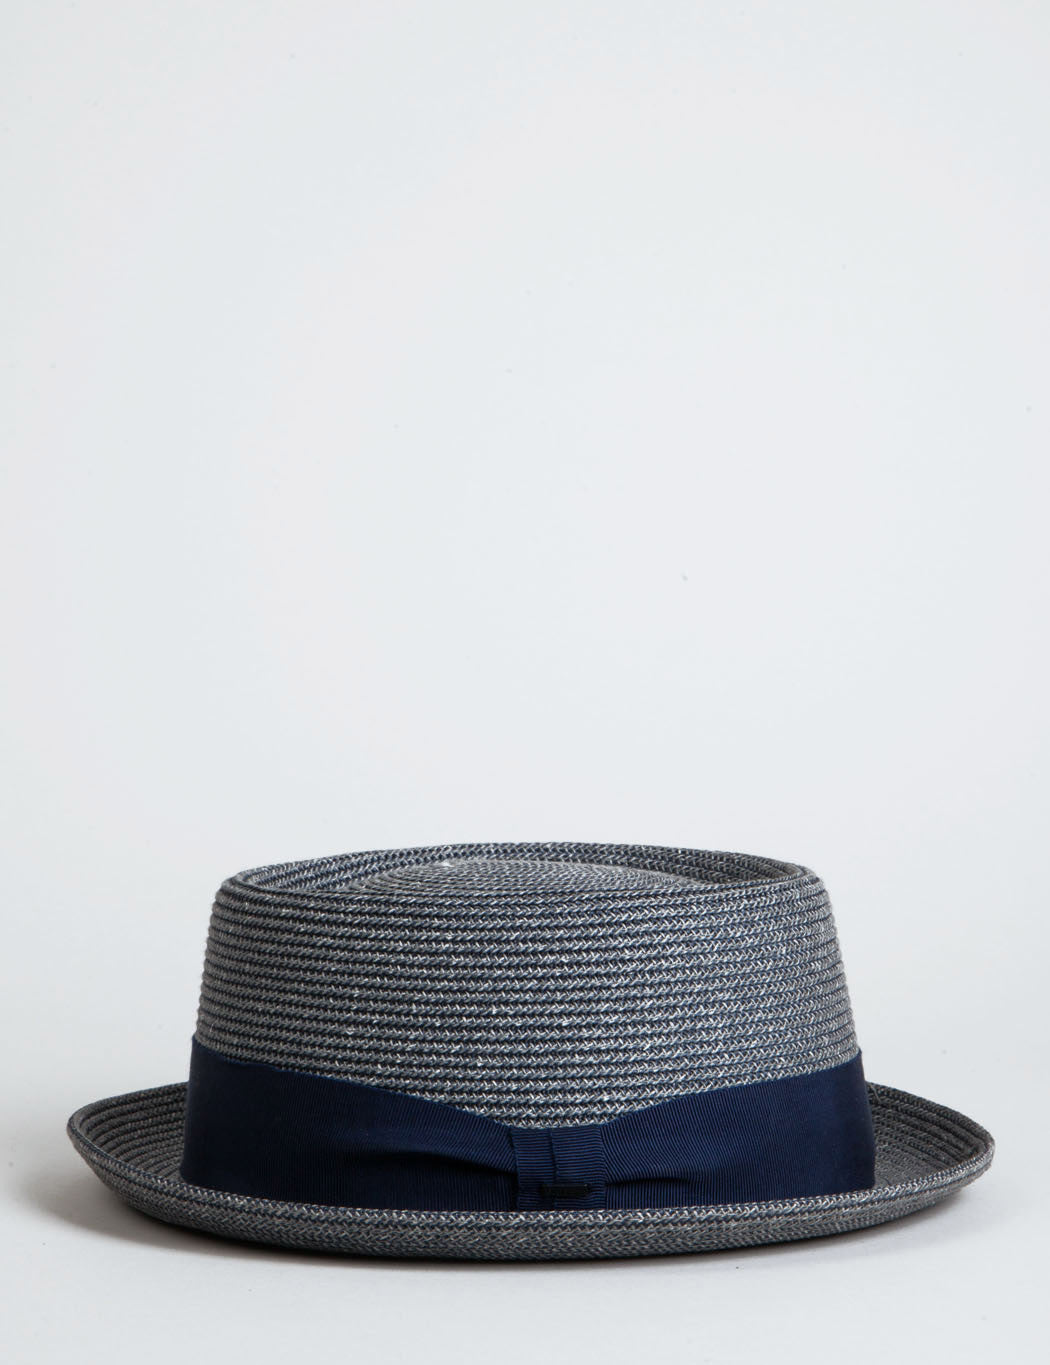 Bailey Waits Pork Pie Hat - Steel Grey